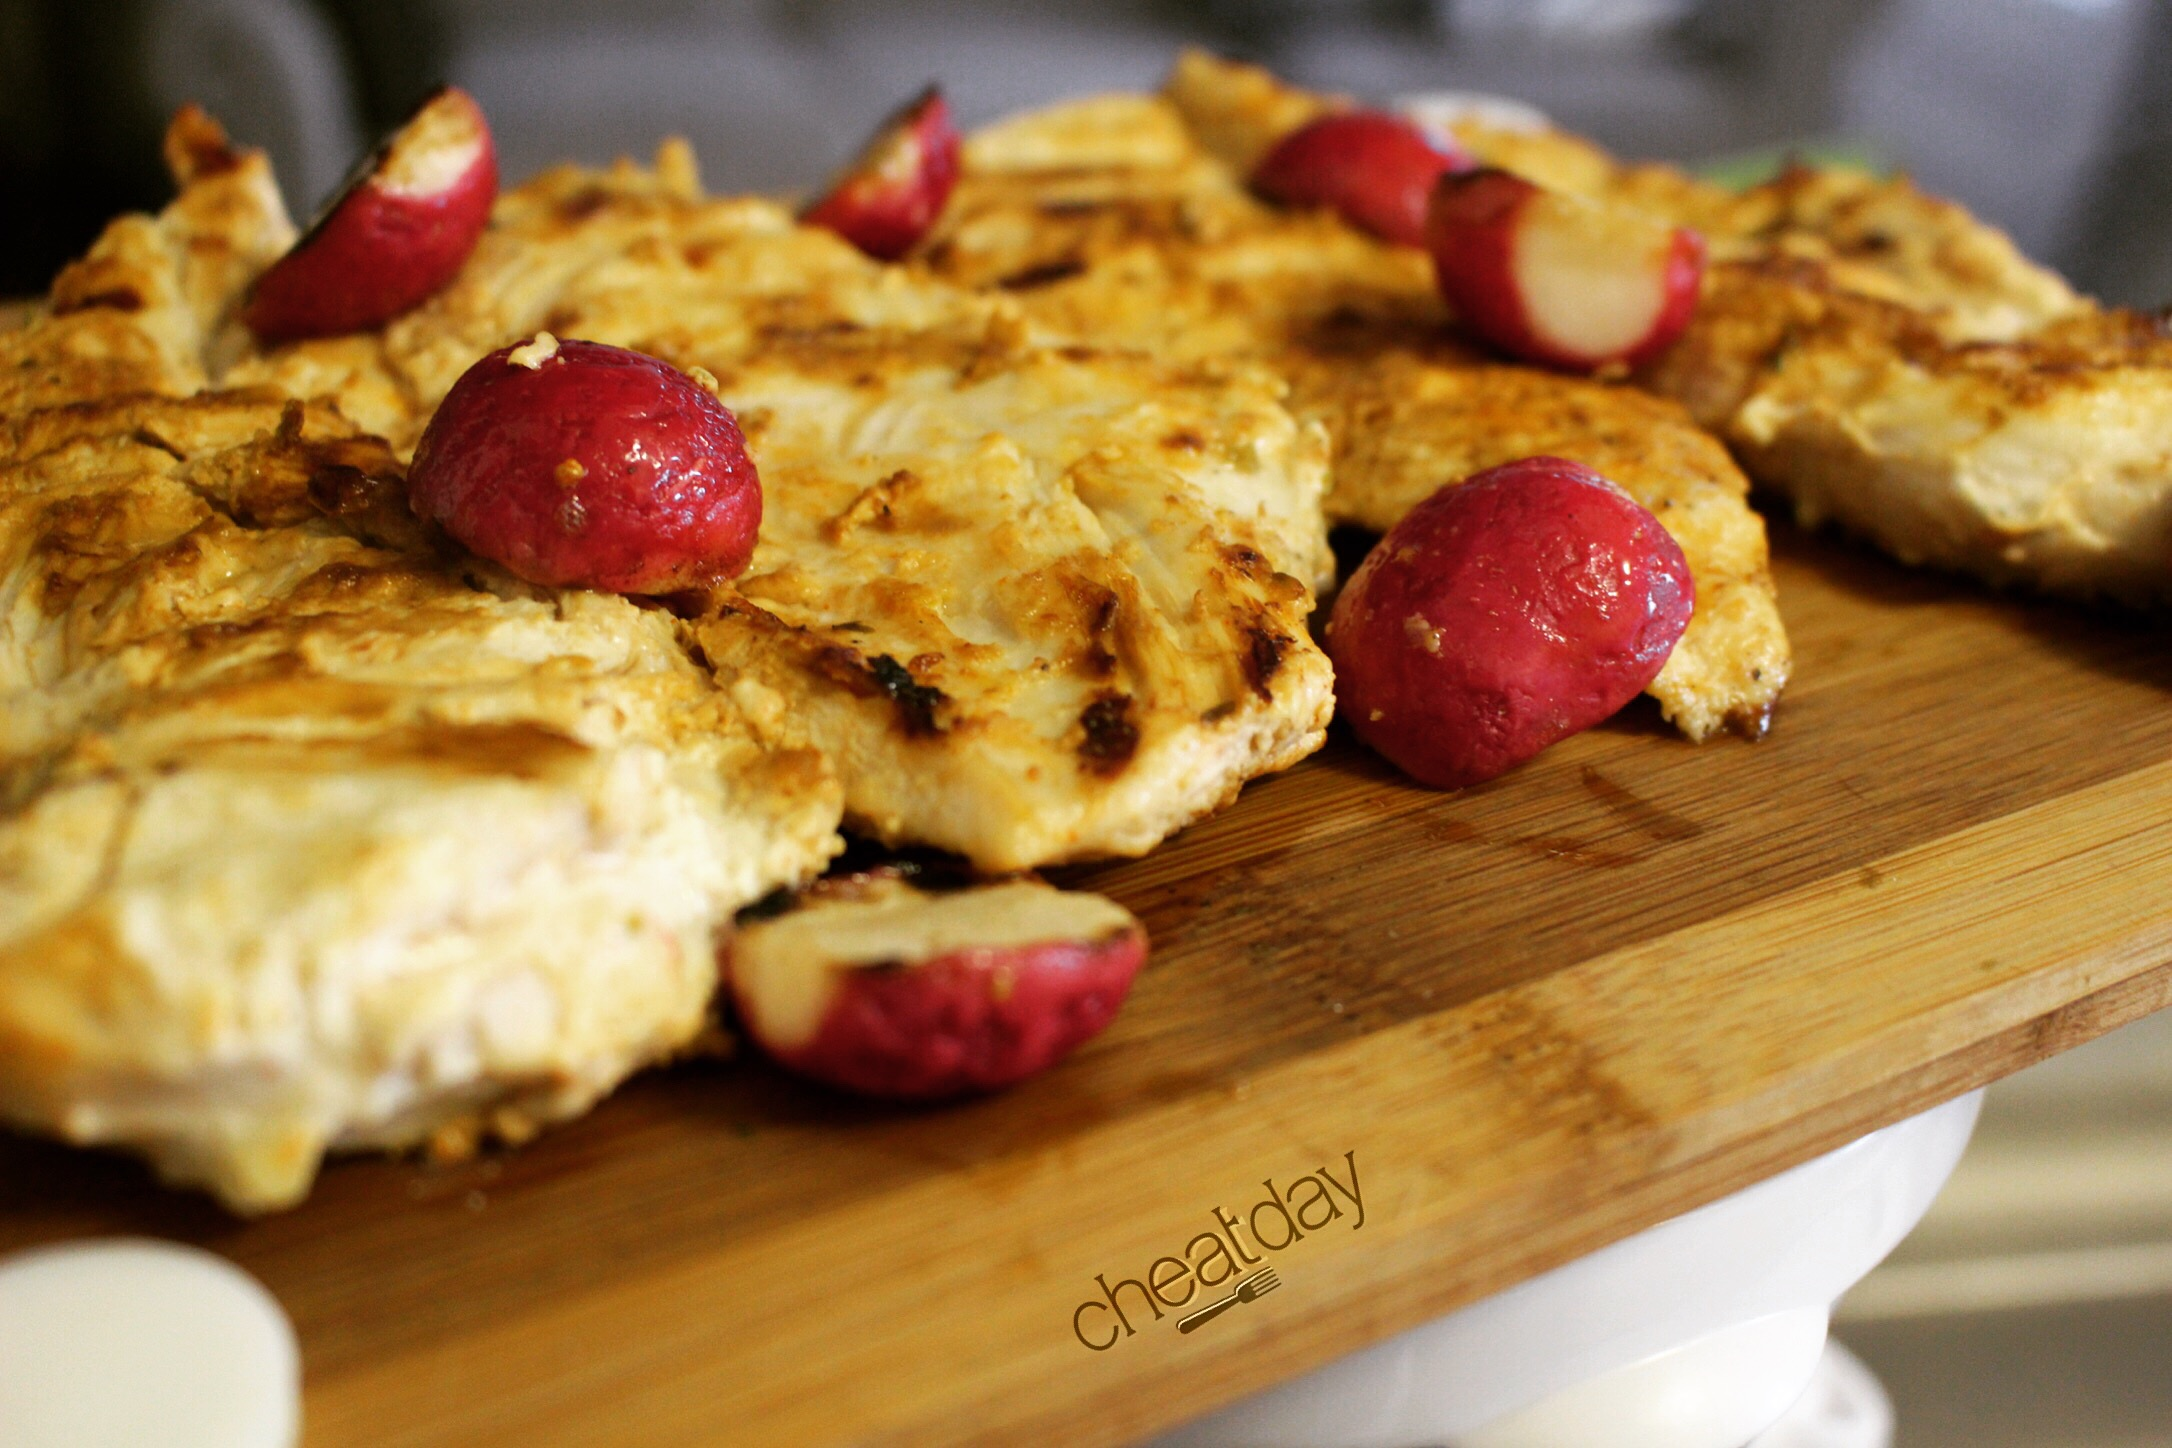 Finished Chicken and radishes...ready to be devoured